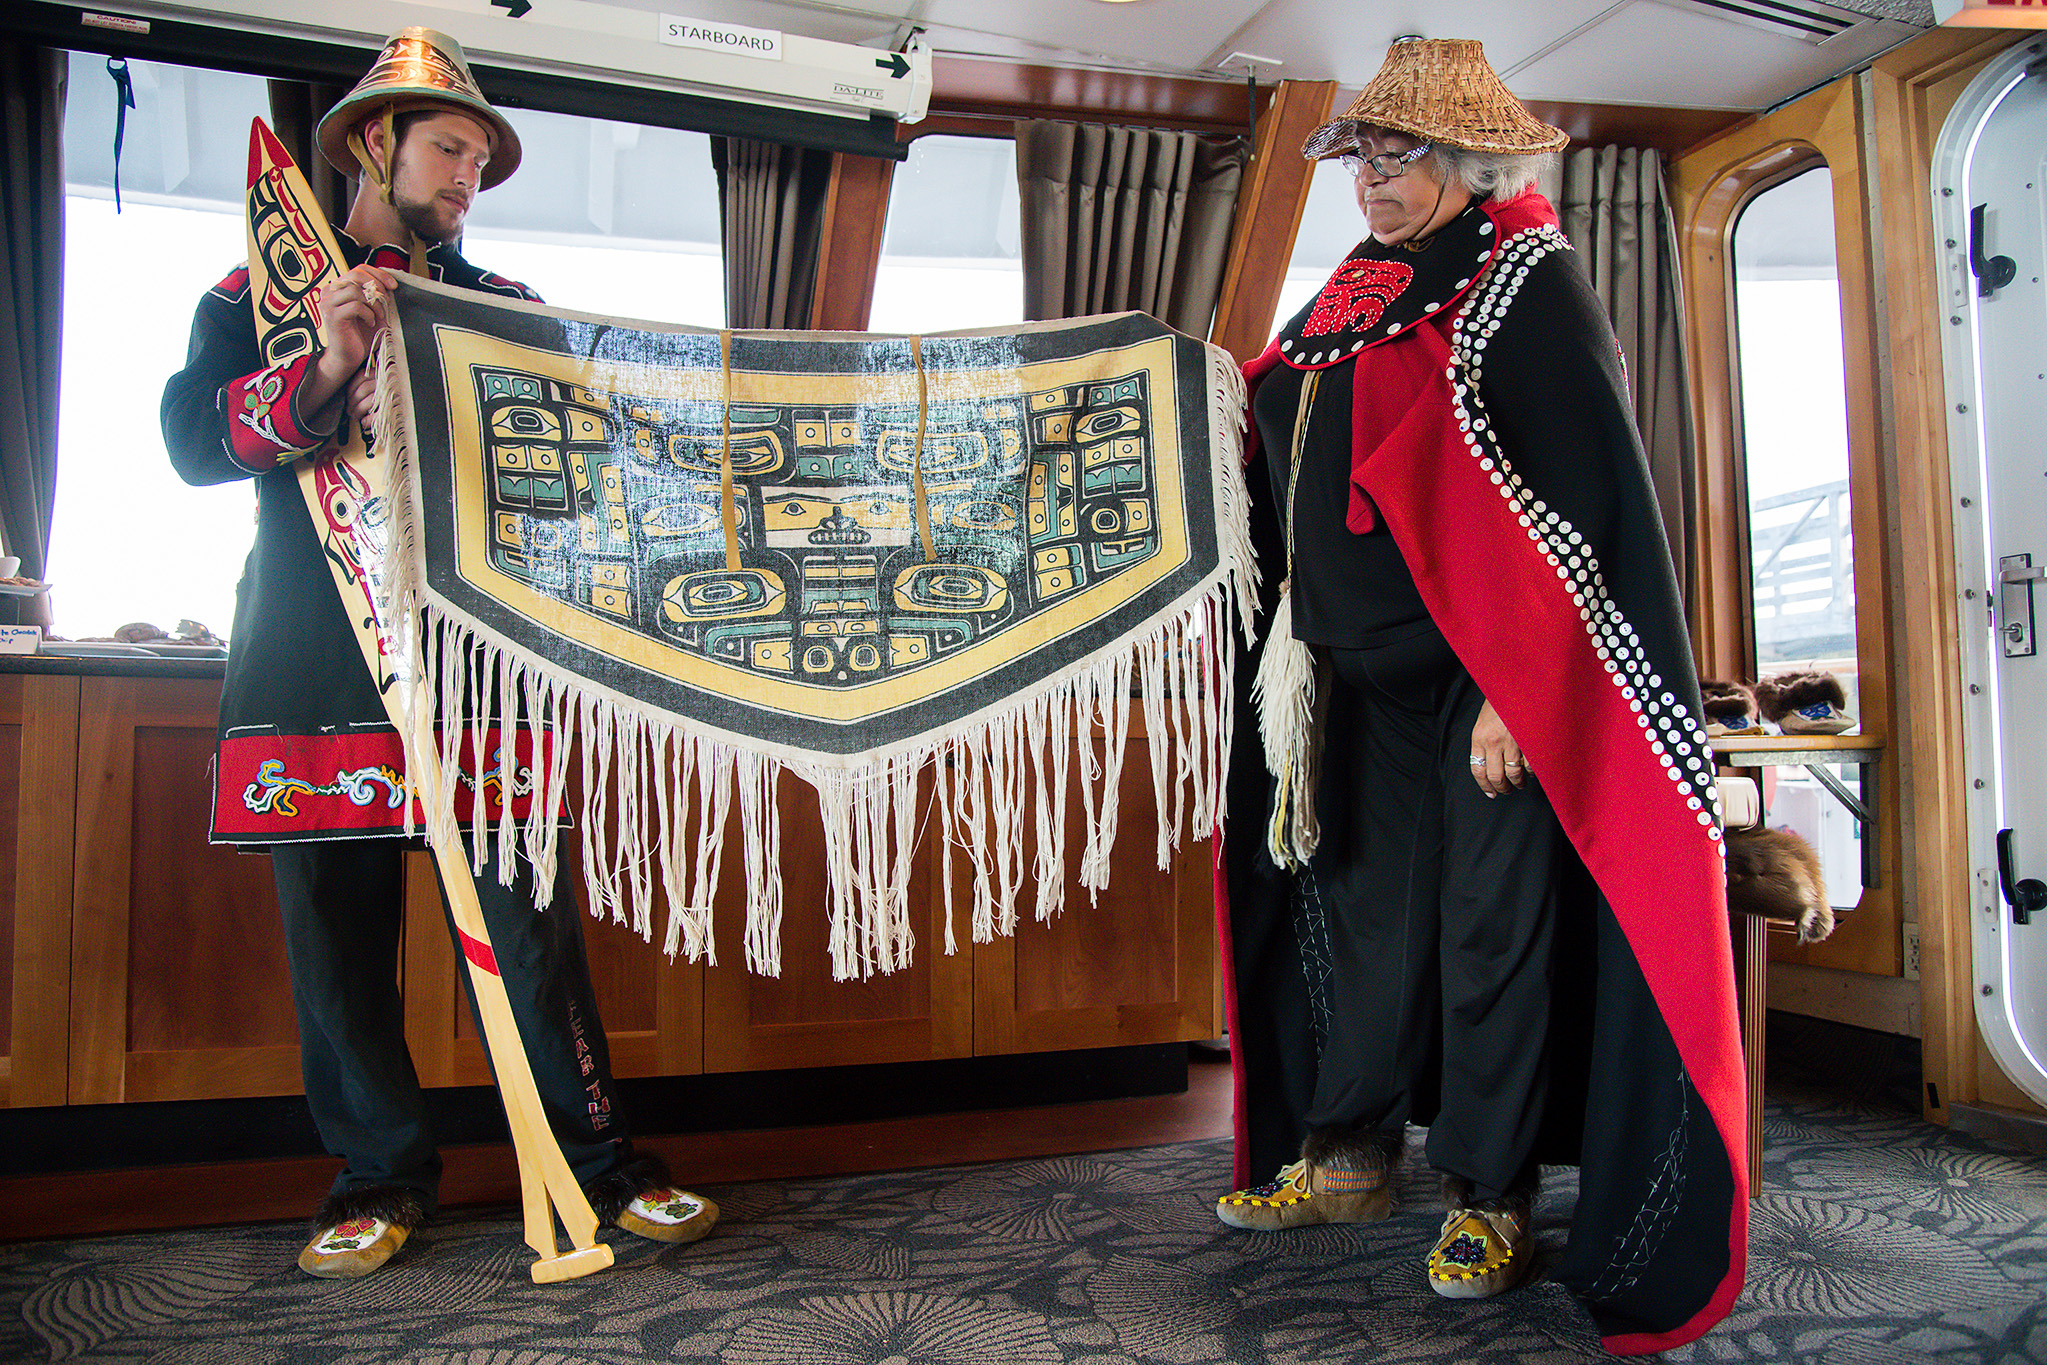 Tlingit people, native to SE Alaska,  shared their handiwork and stories on board.